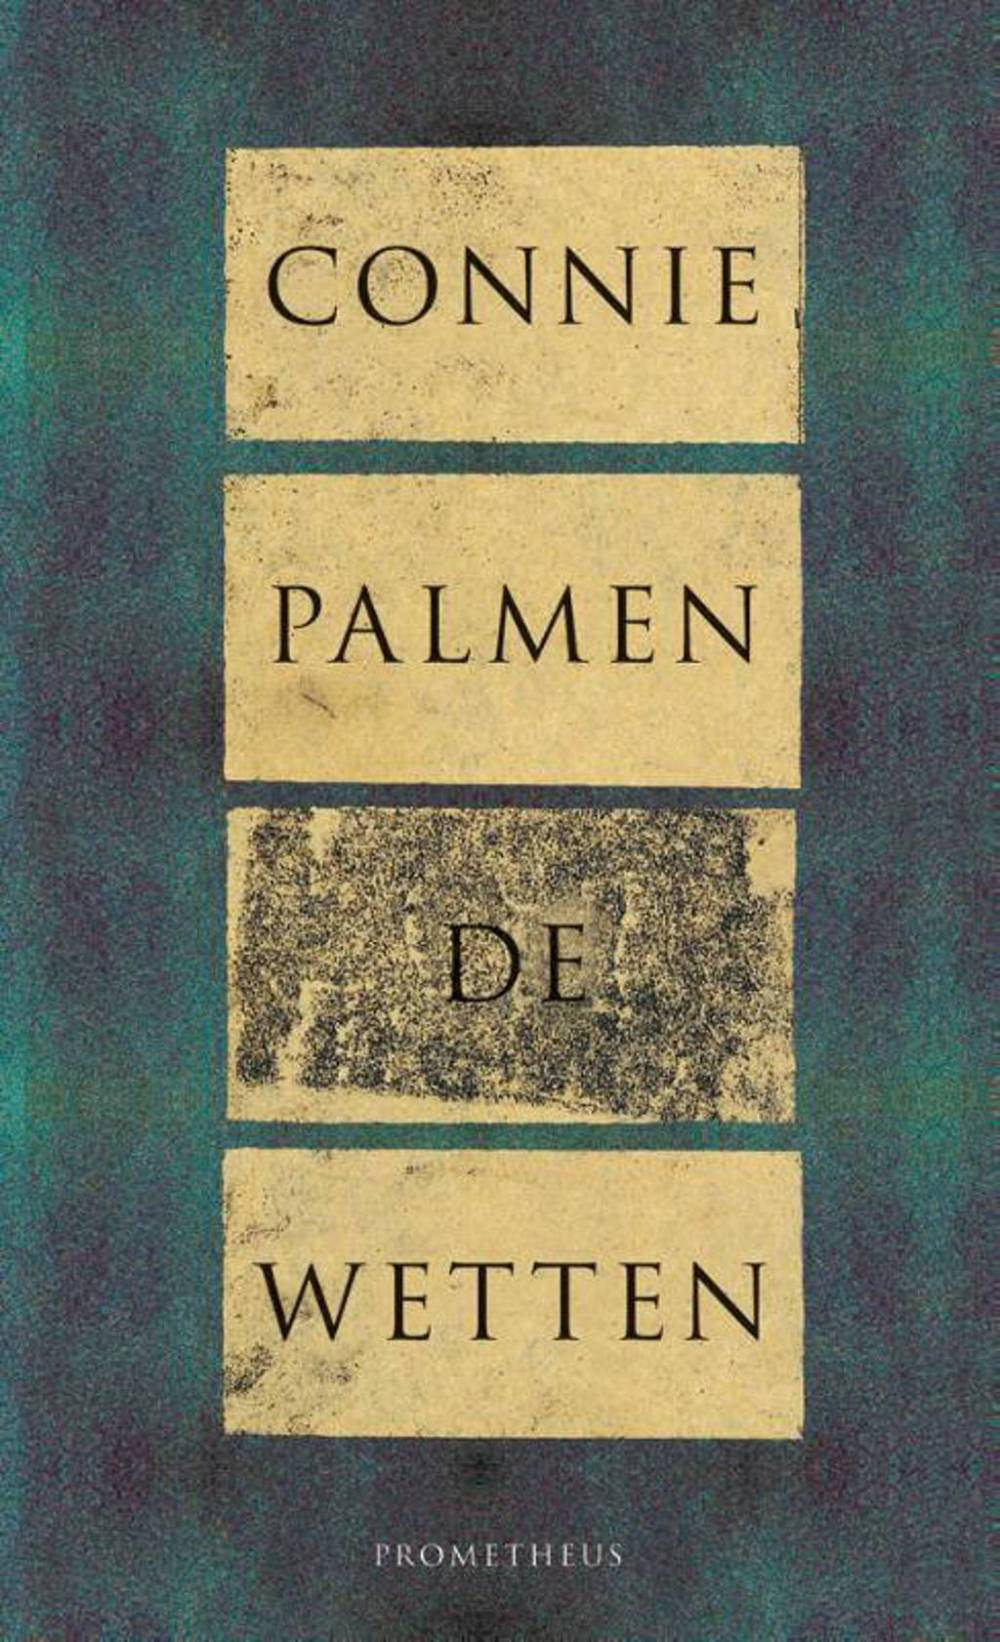 Connie Palmen_De wetten (cover)